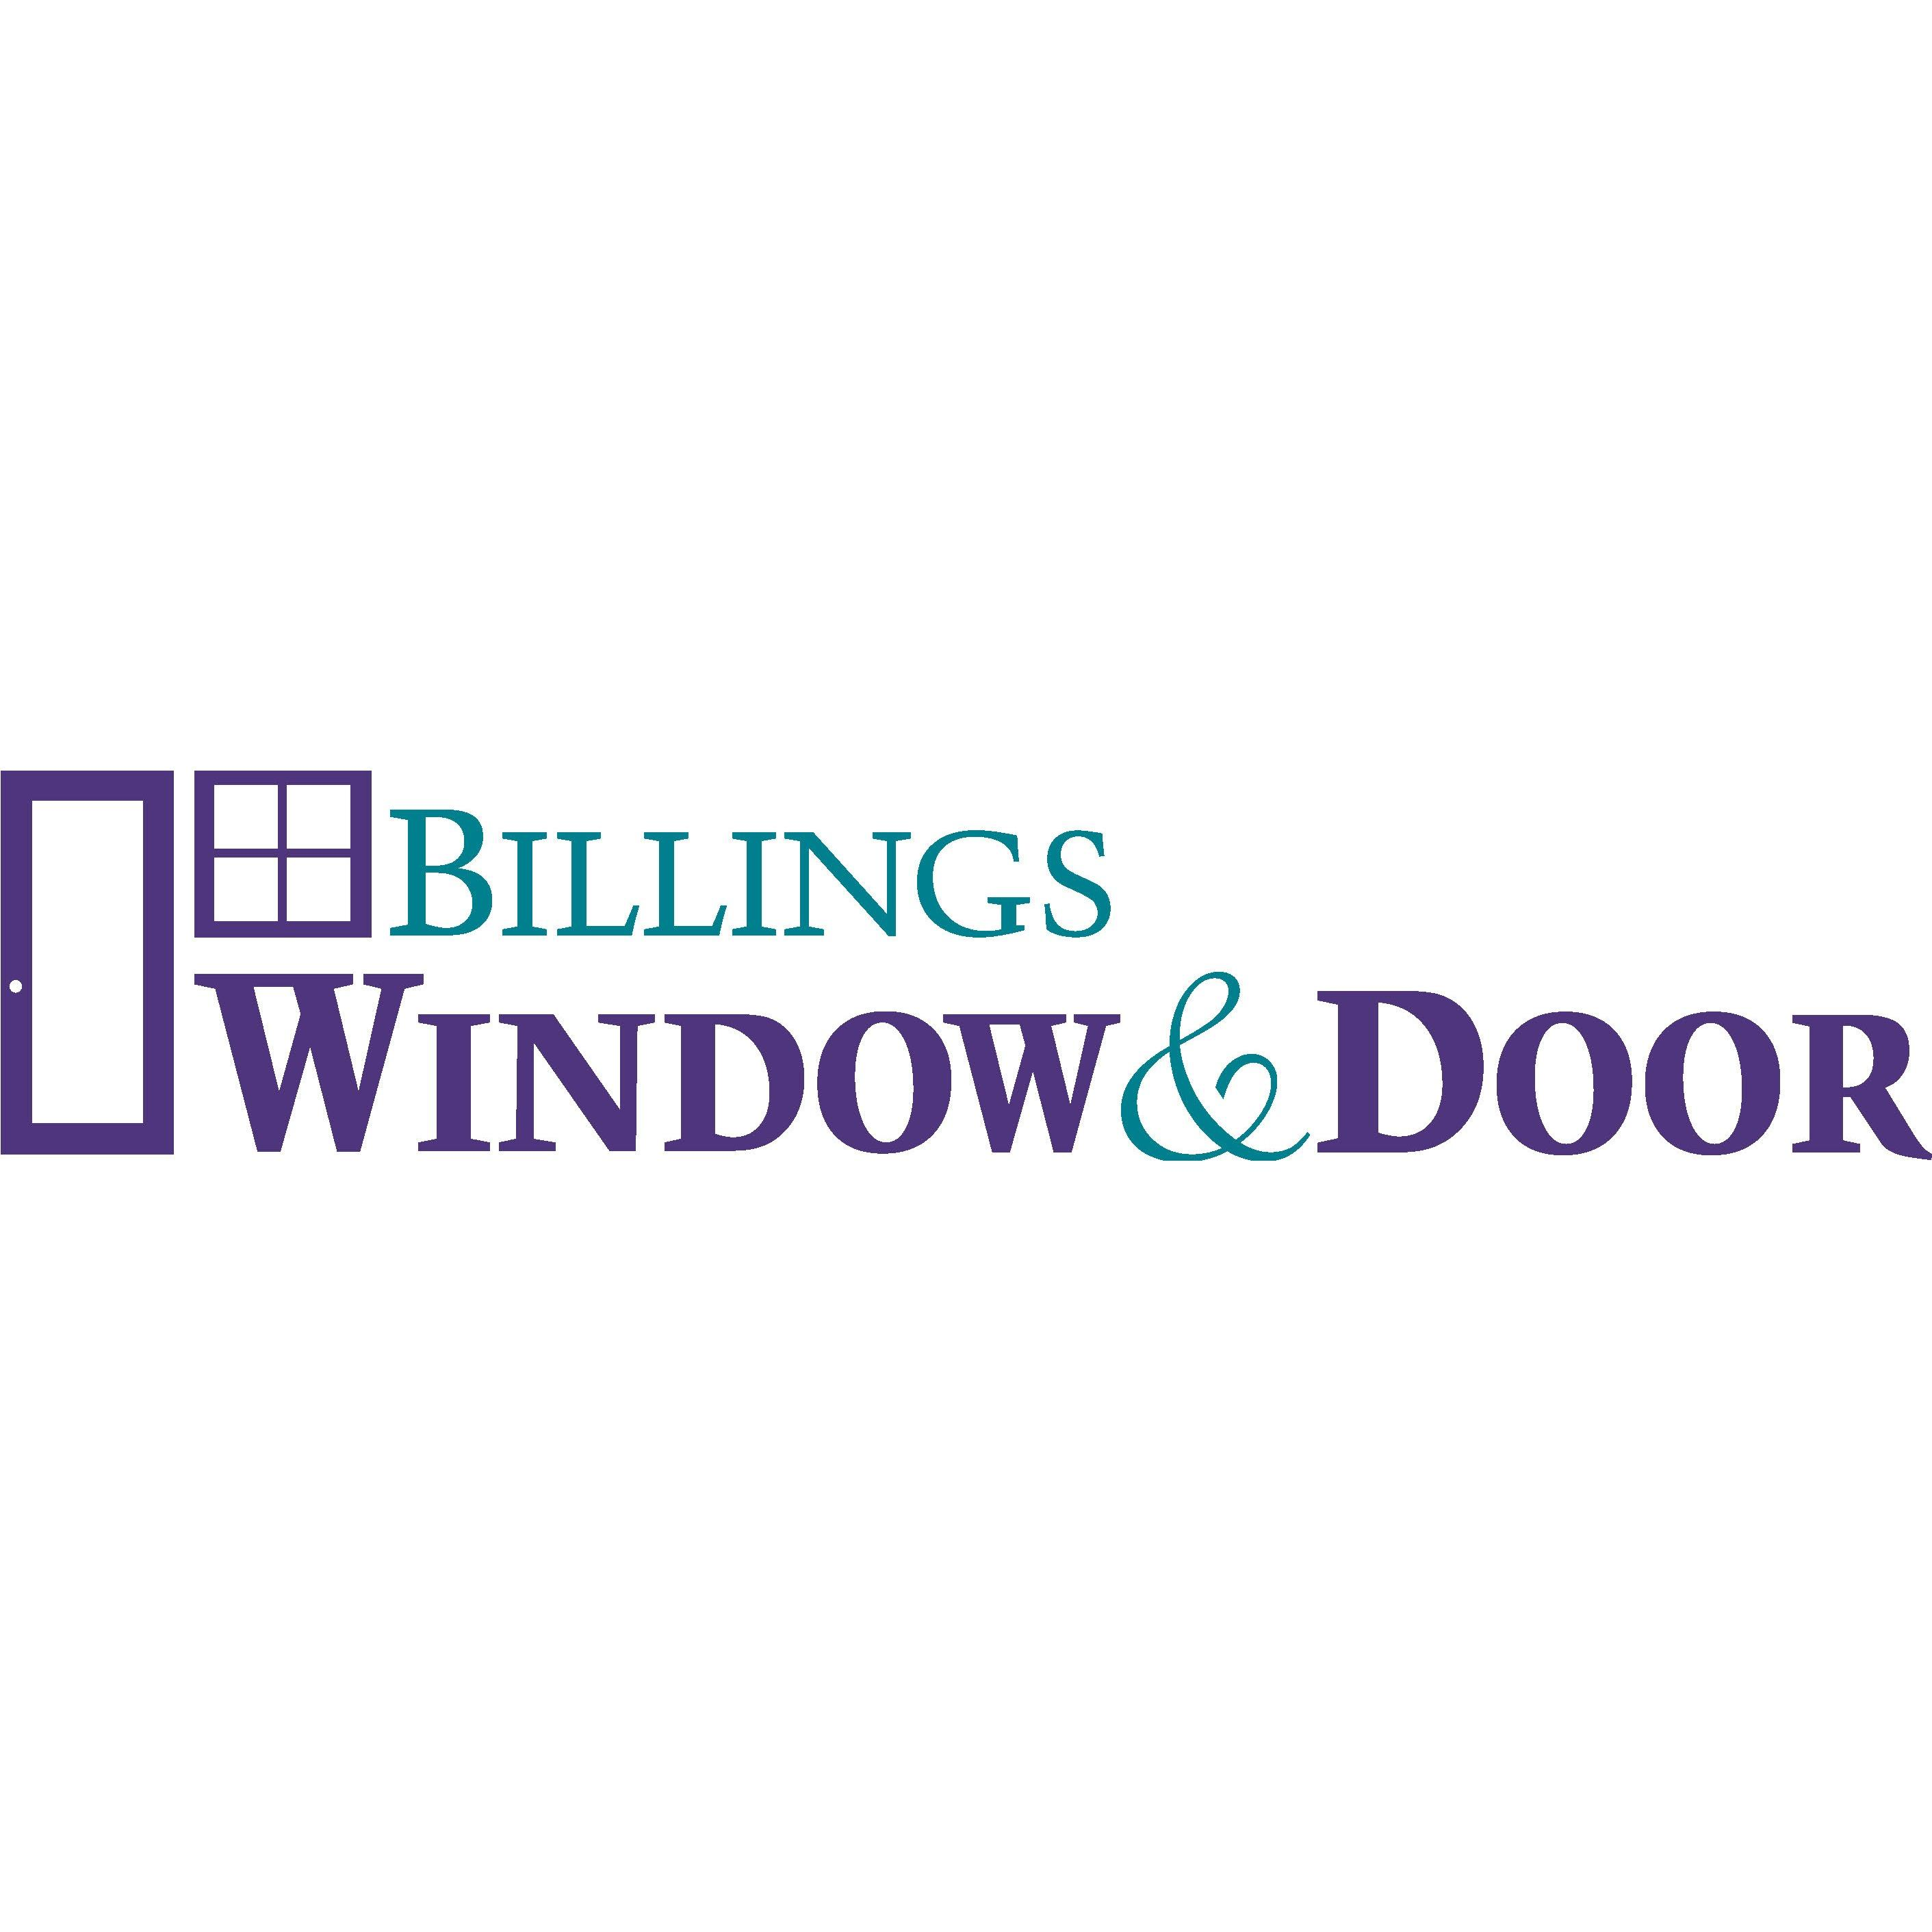 Billings Window and Door